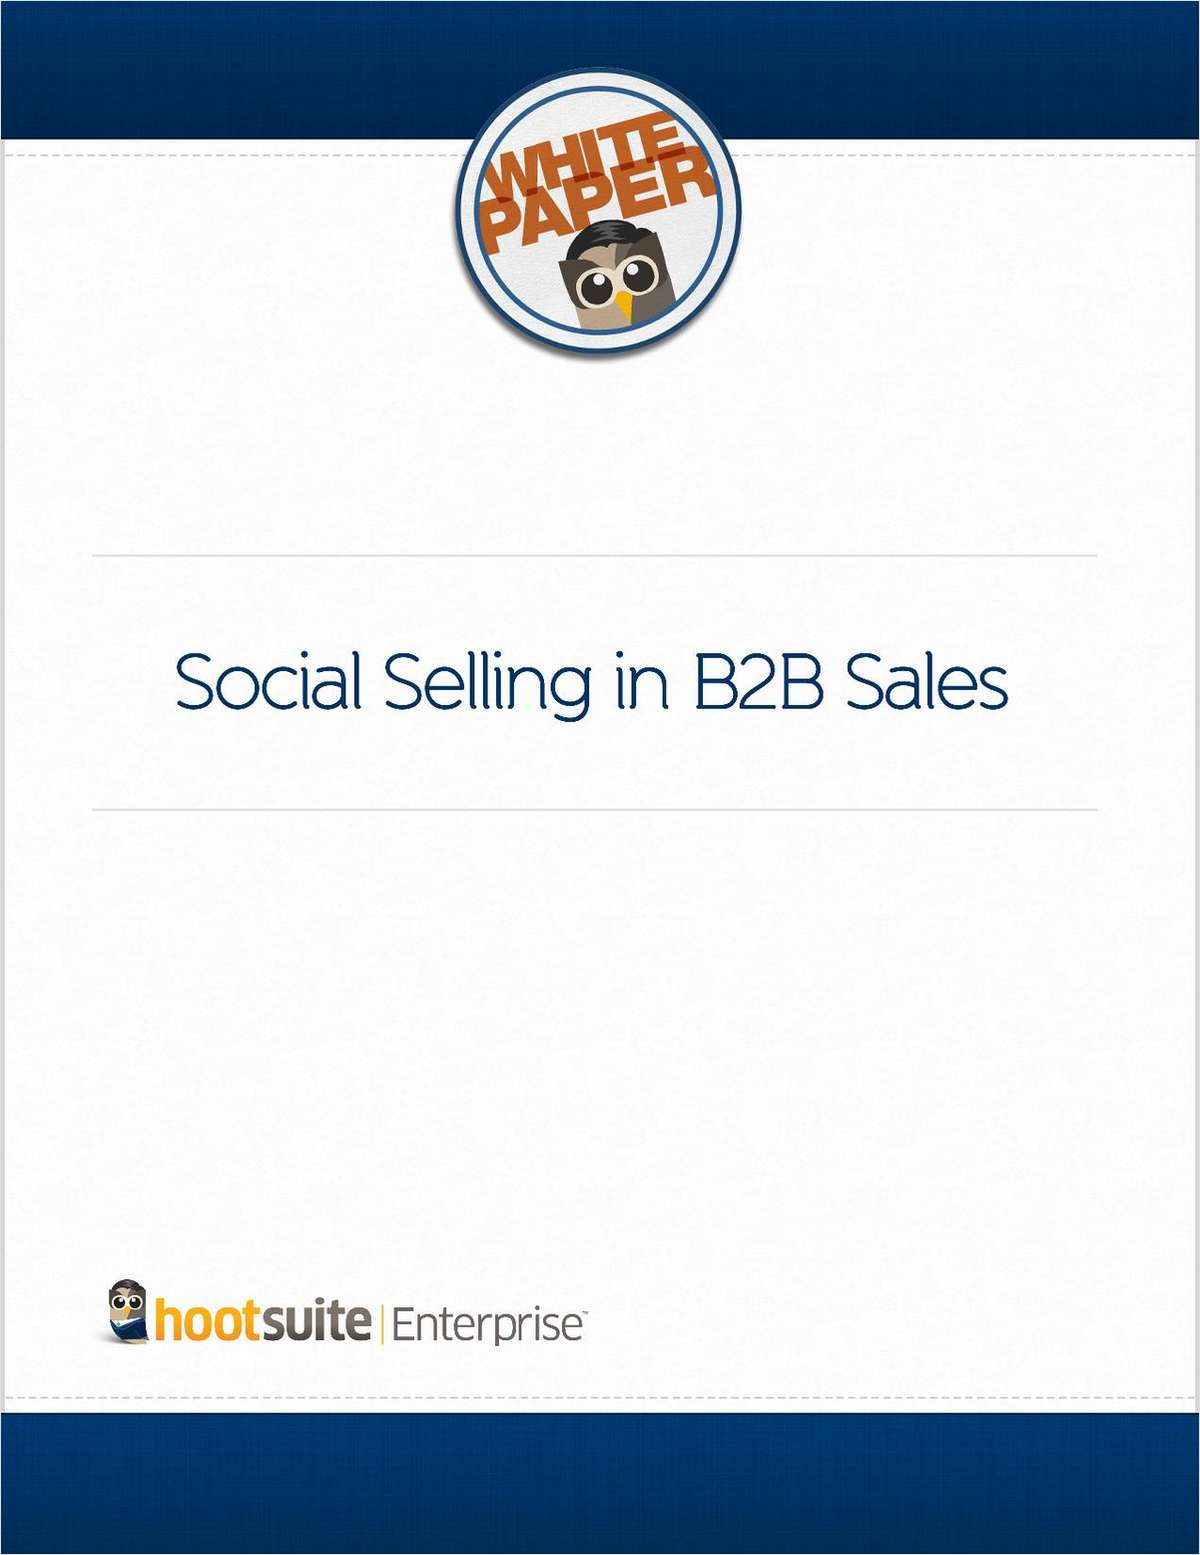 Social Selling in B2B Sales